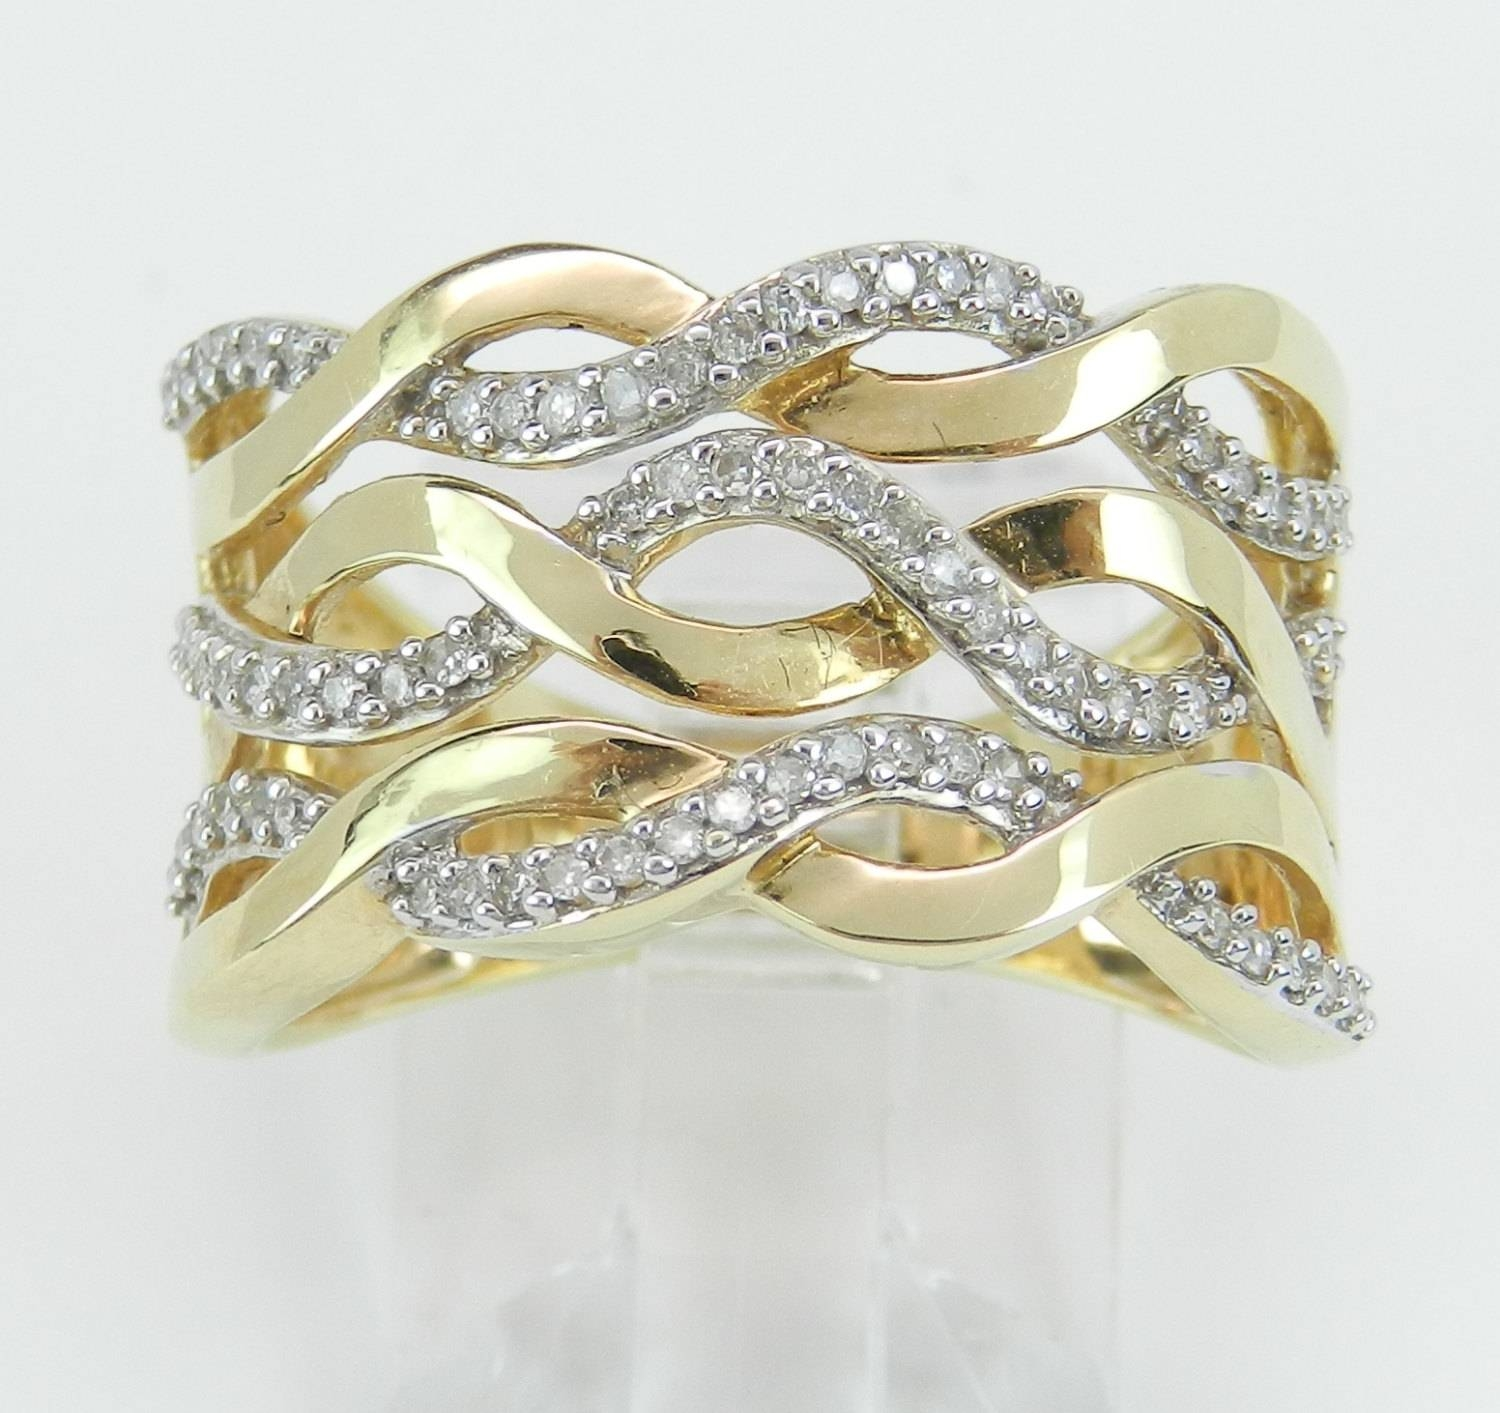 14K Yellow Gold Wide Diamond Anniversary Ring Multi Row Wedding With Regard To Newest Wide Band Diamond Anniversary Rings (View 2 of 25)